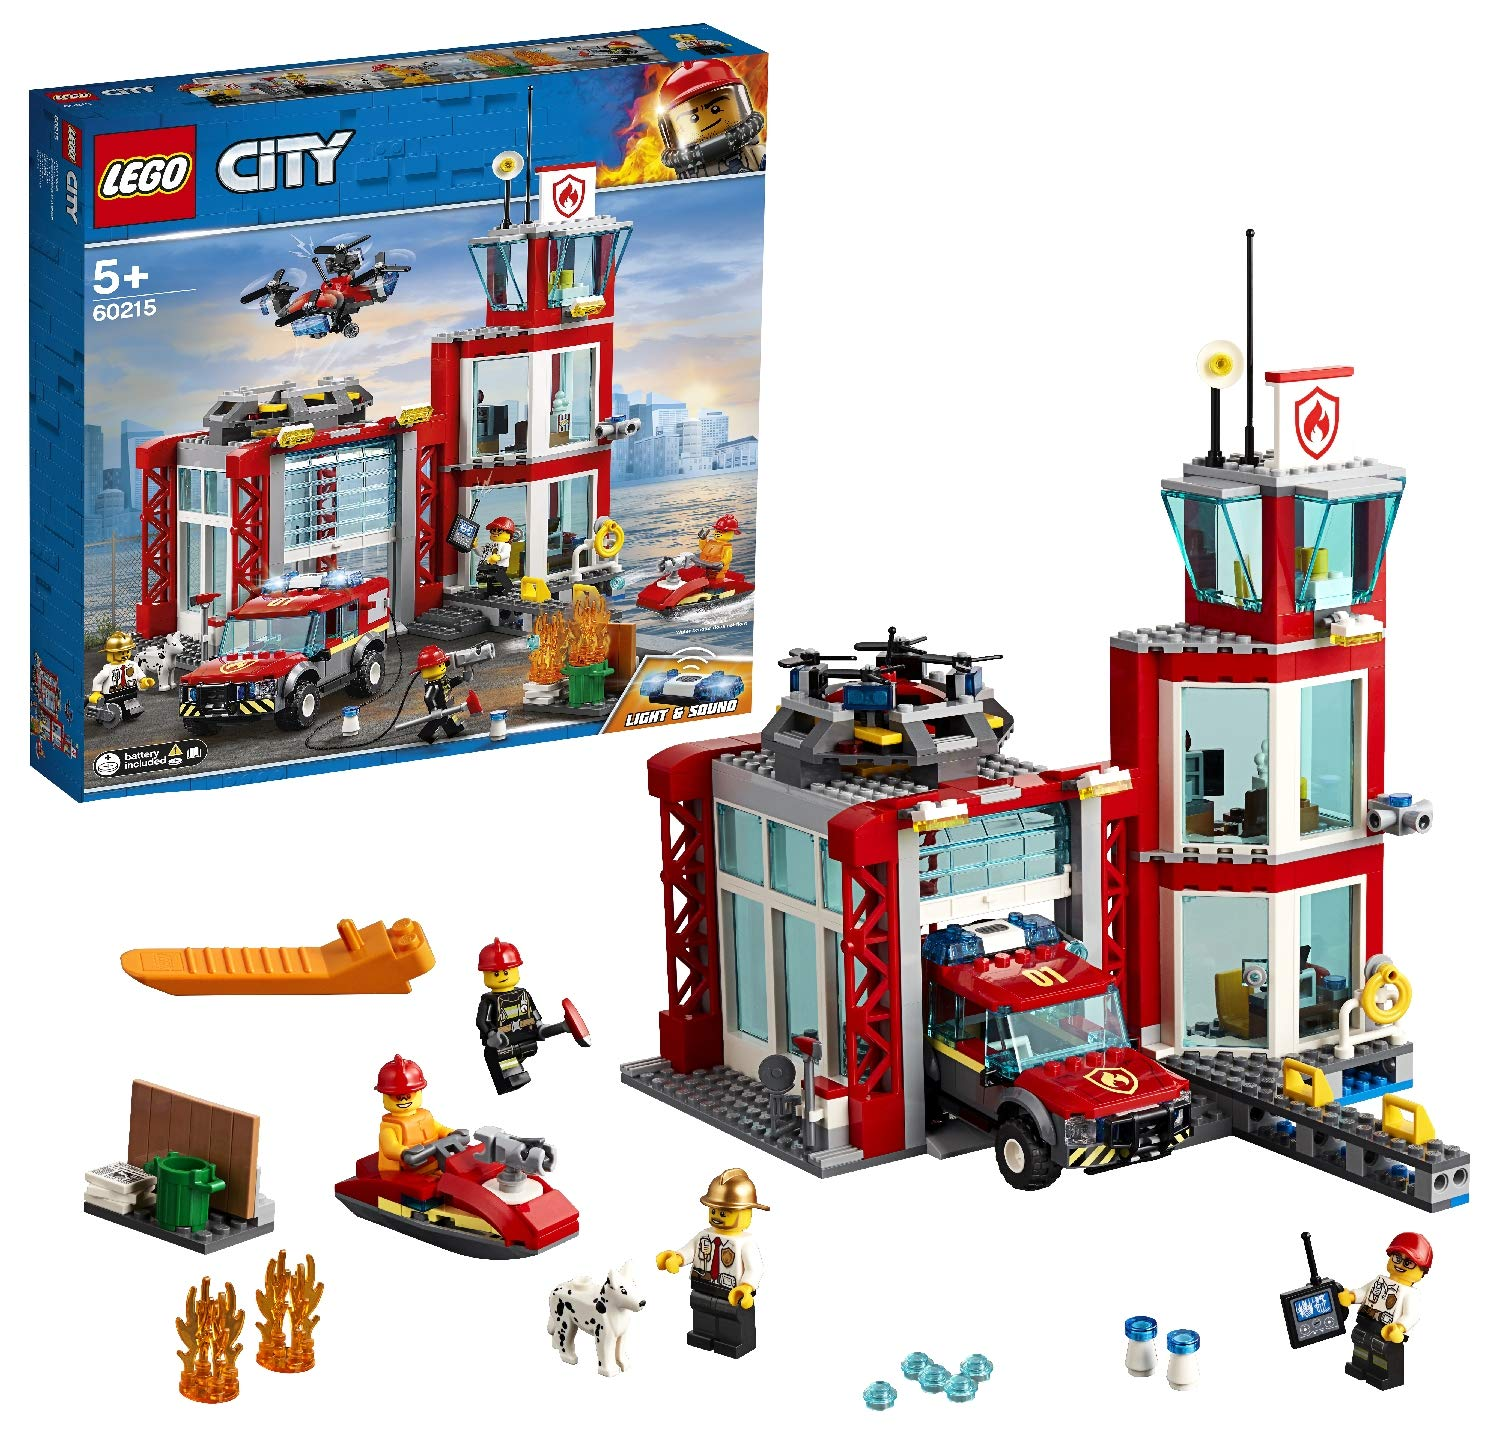 LEGO City Fire Station Building Set, Fire Toy Truck Water Scooter & Drone, Firefighter Toys for Kids by LEGO